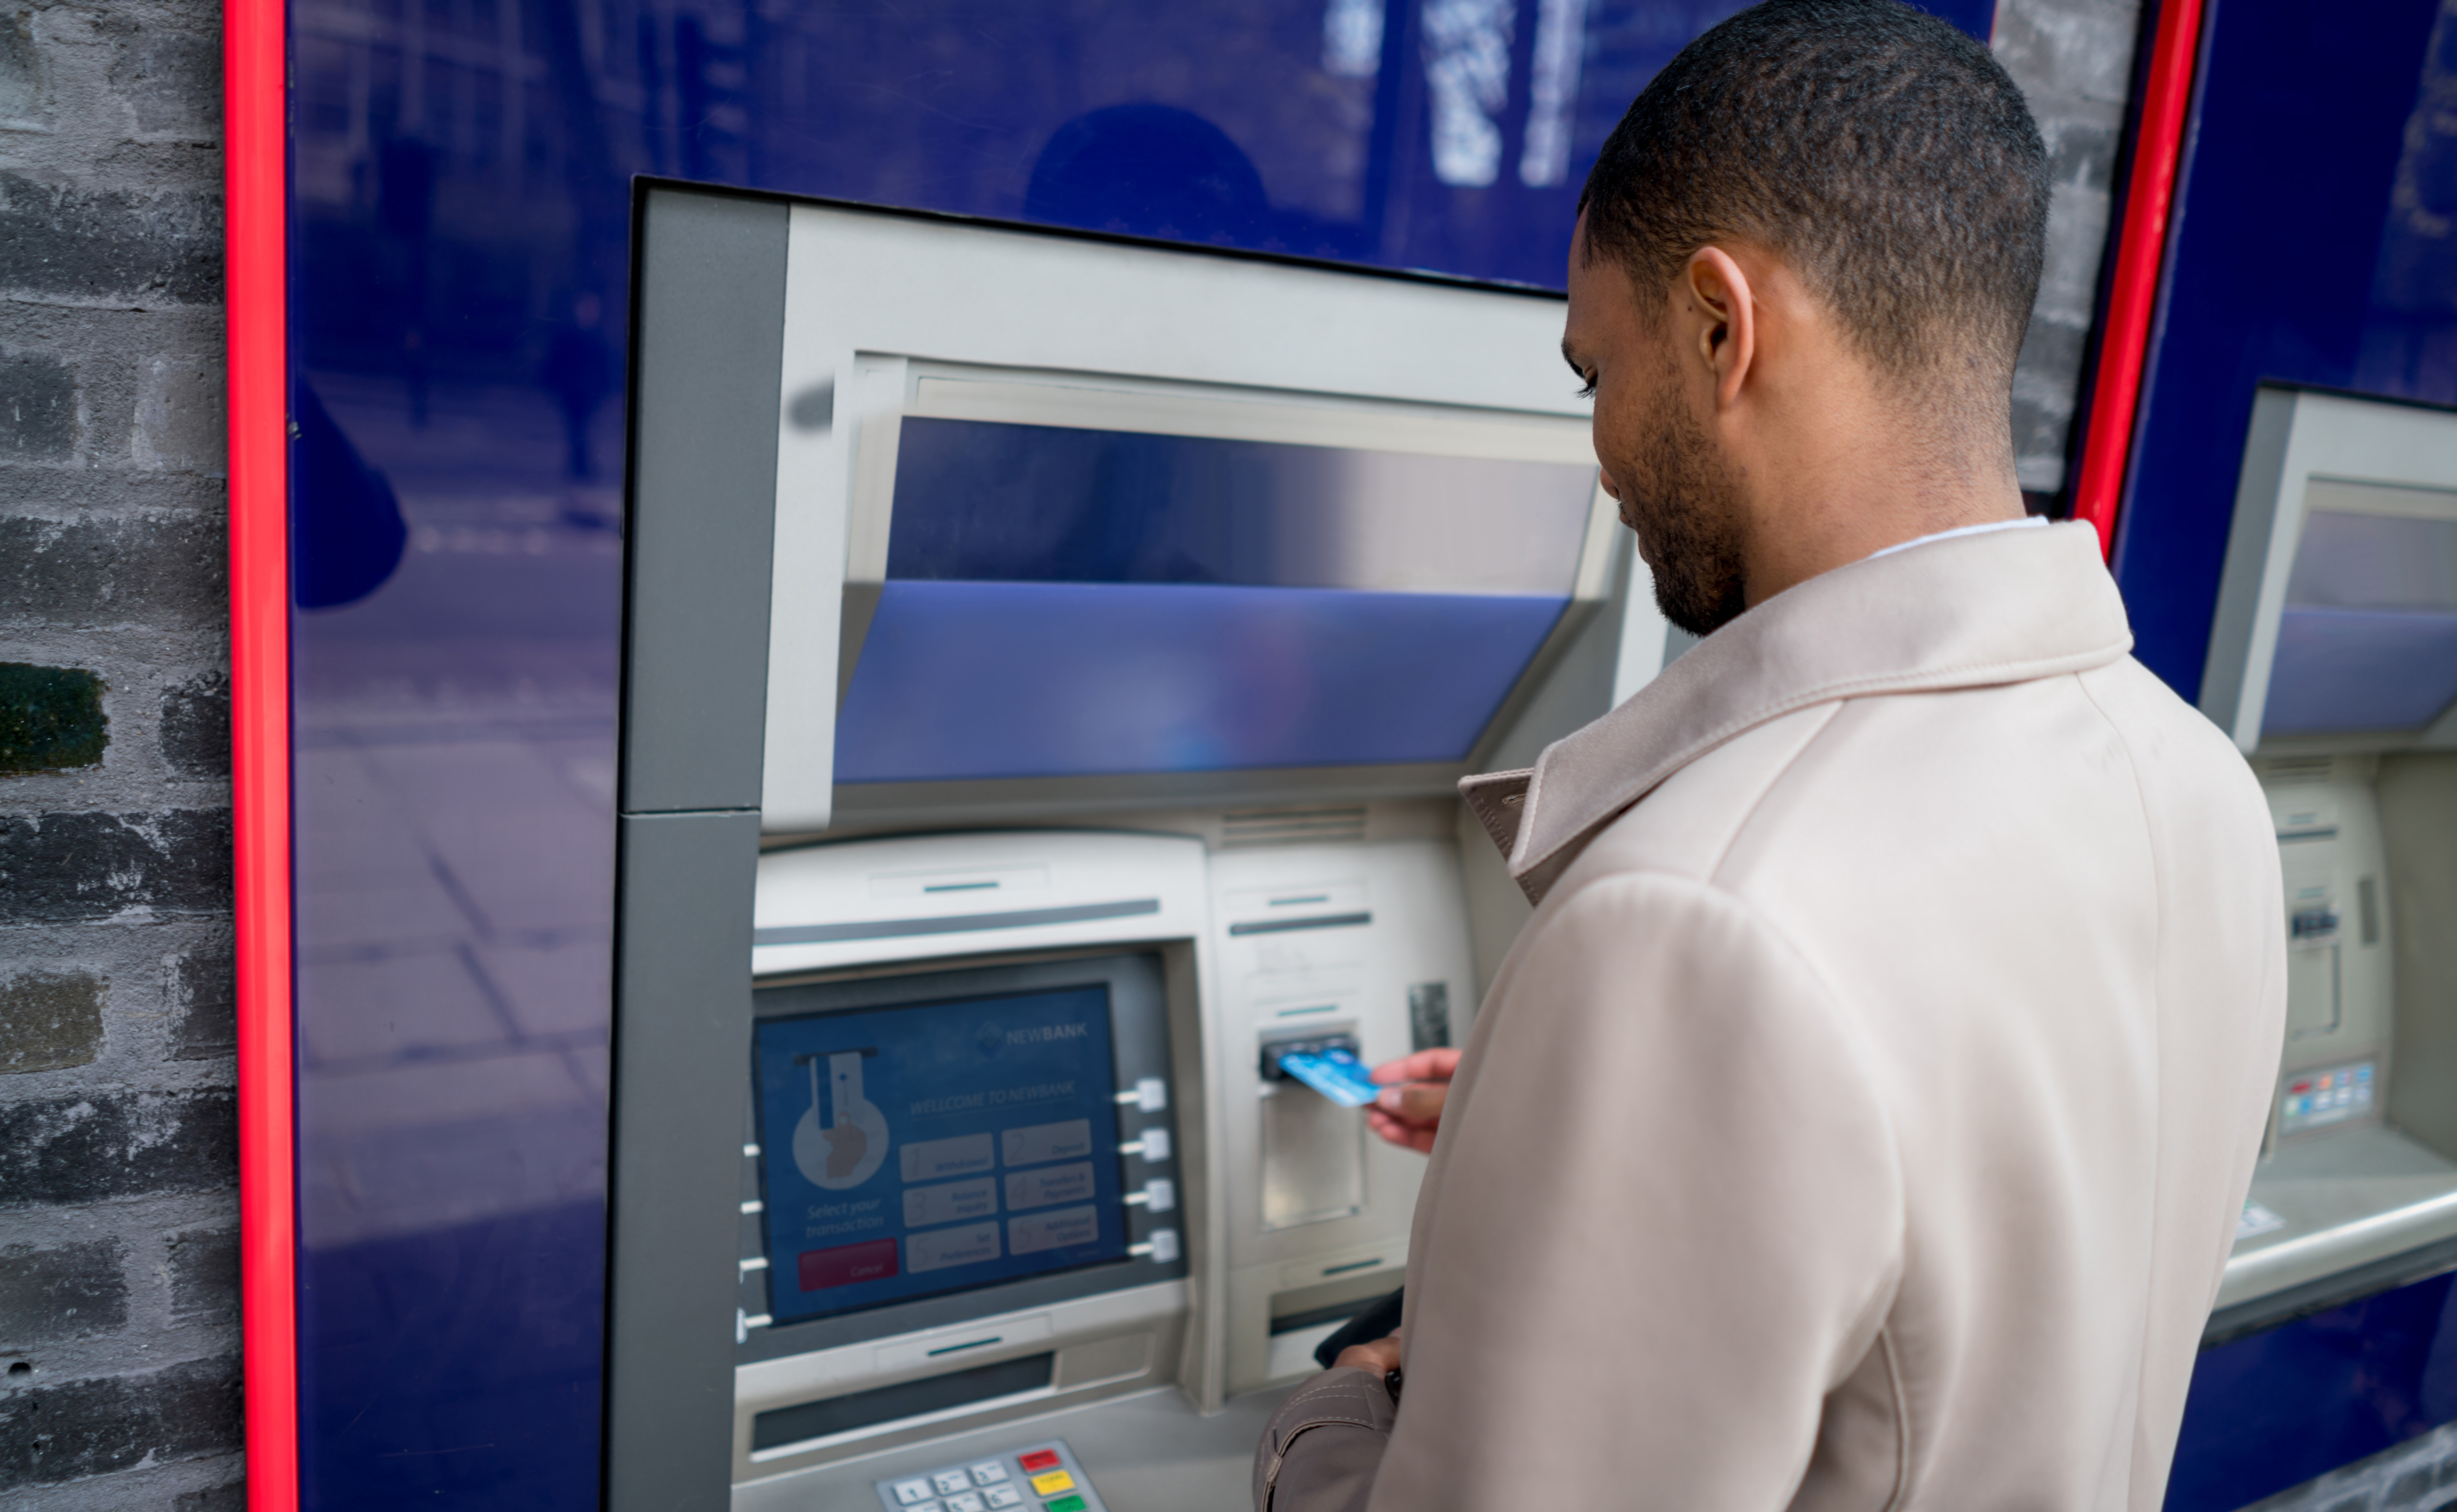 man standing in front of ATM machine